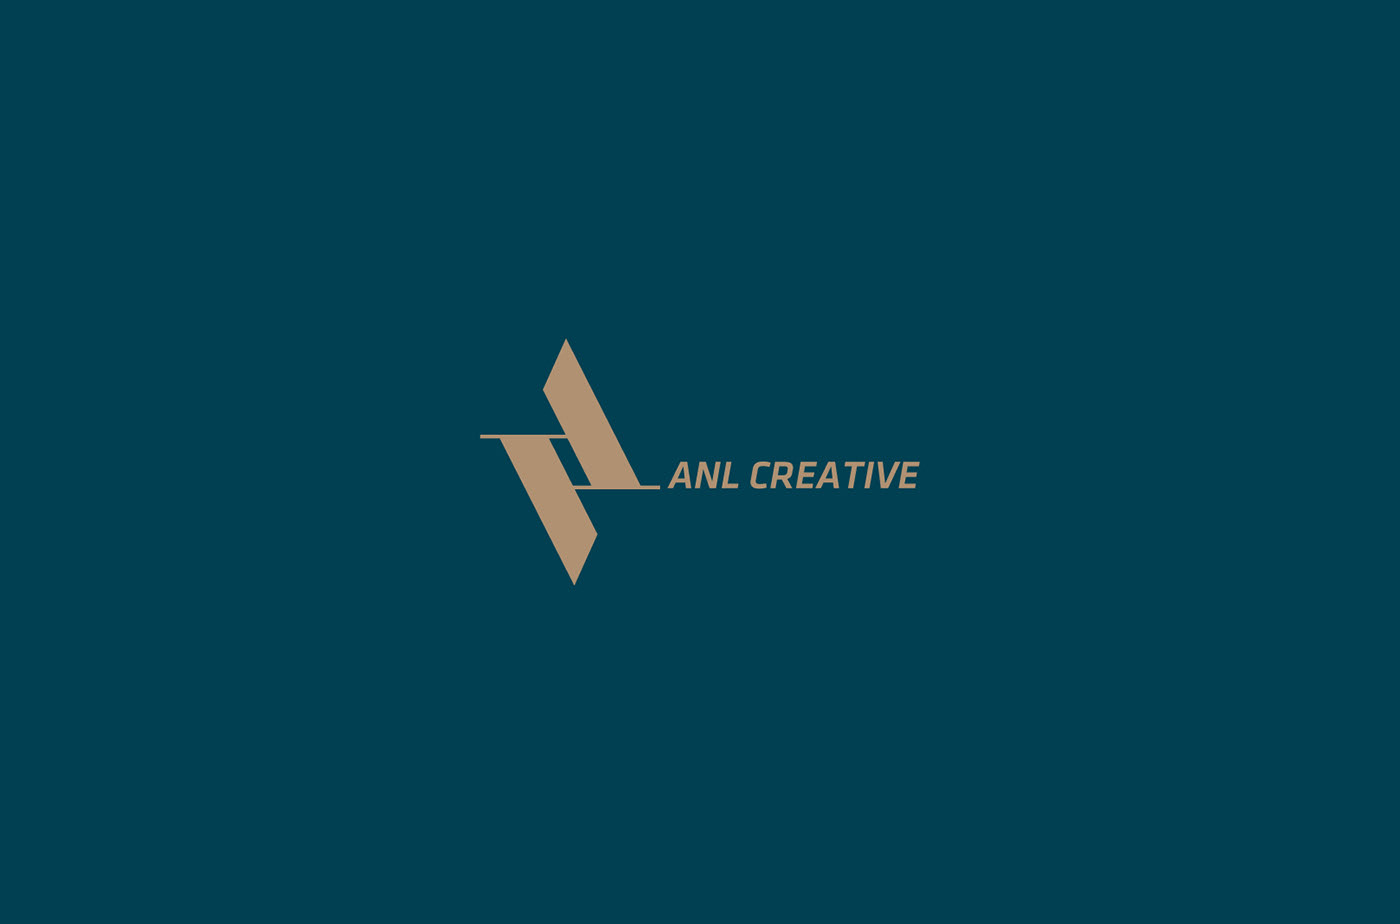 Rebranding of Anl Creative